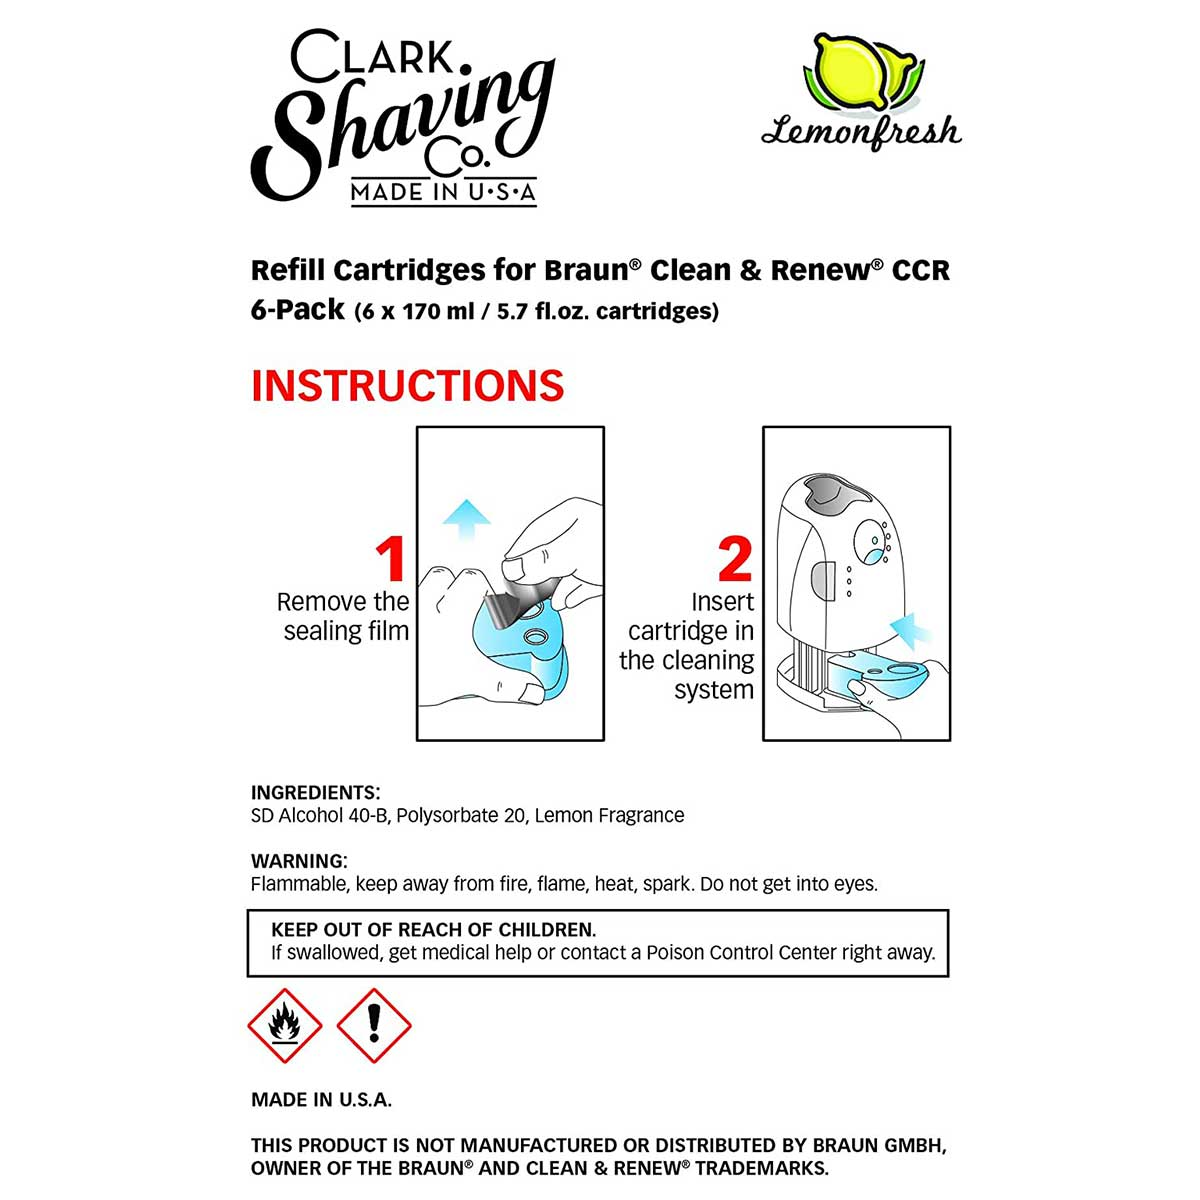 Clark Shaving Co. Refill Cartridges for Braun Clean & Renew CCR, 4-Pack